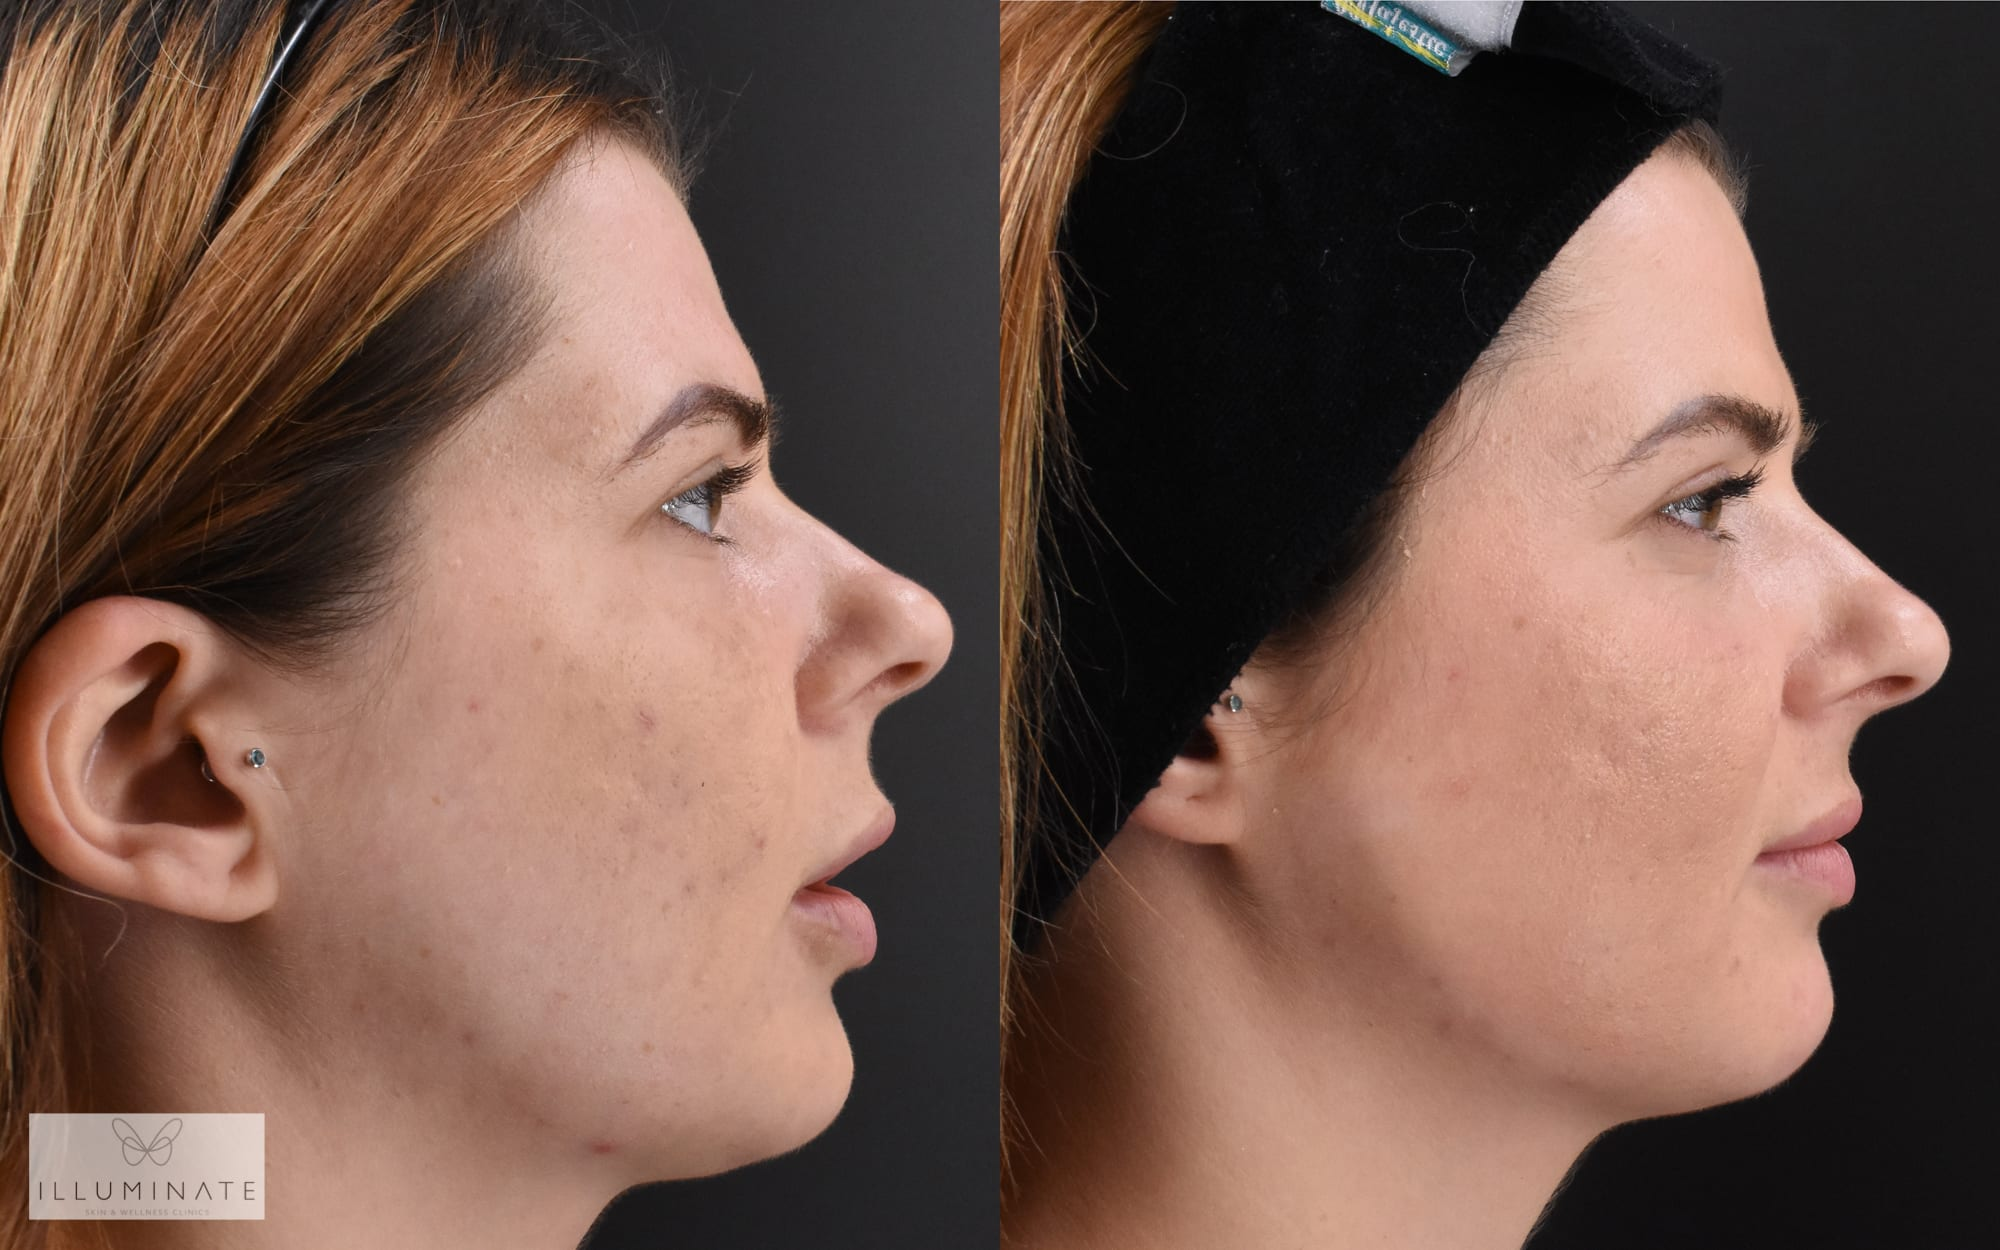 """How Dr Sophie transformed my skin and self-confidence"", by Illuminate team member Emma Nye."